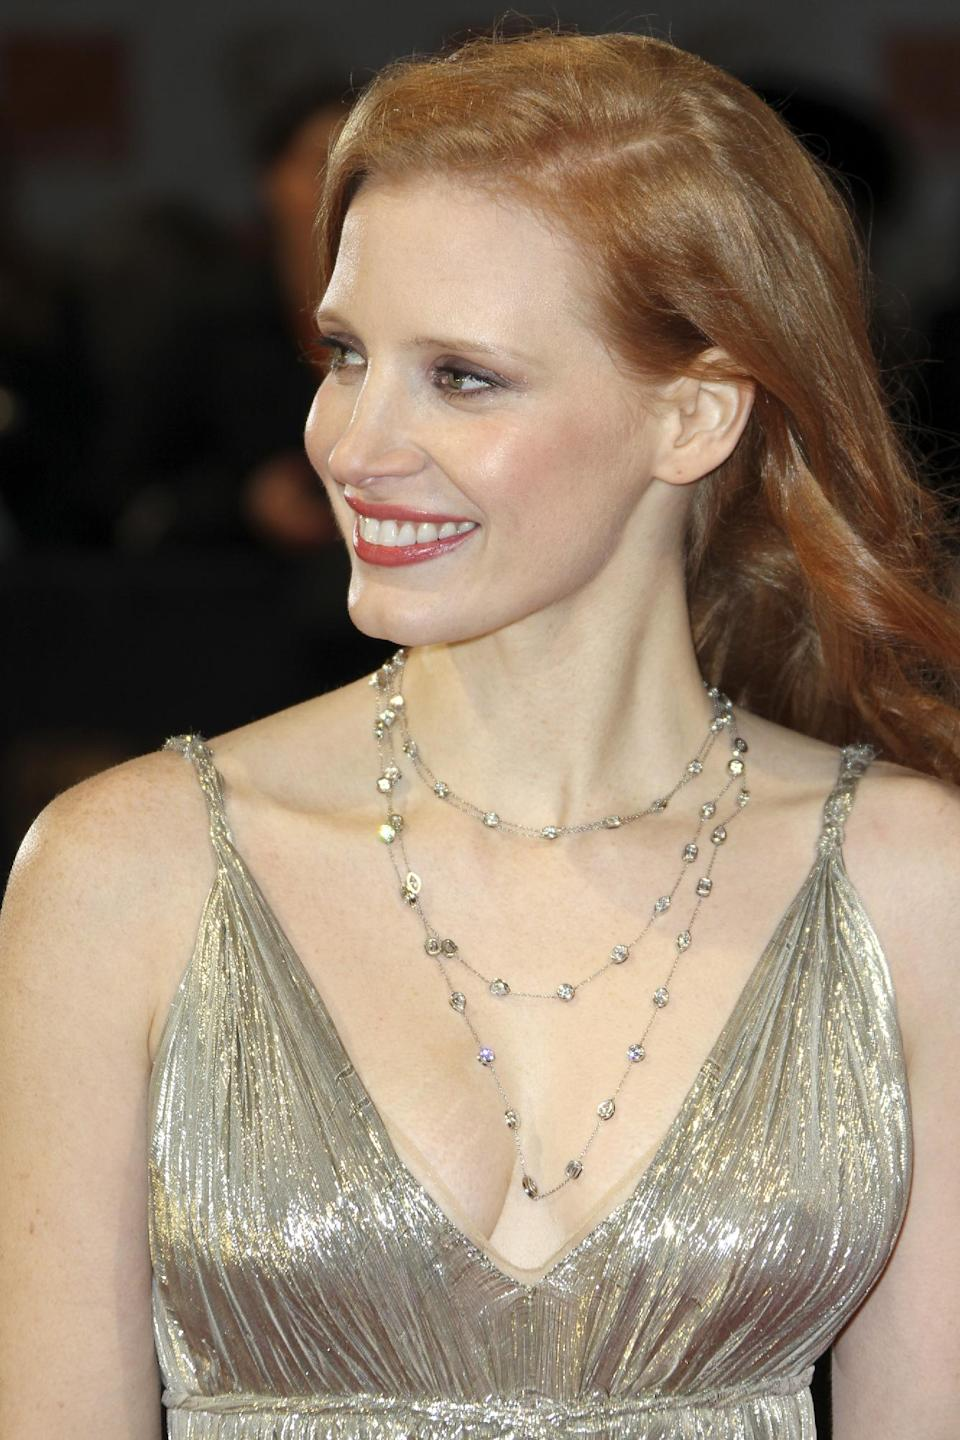 Actress Jessica Chastain arrives for the BAFTA Film Awards 2012, at The Royal Opera House in London, Sunday, Feb. 12, 2012. (AP Photo/Alastair Grant)